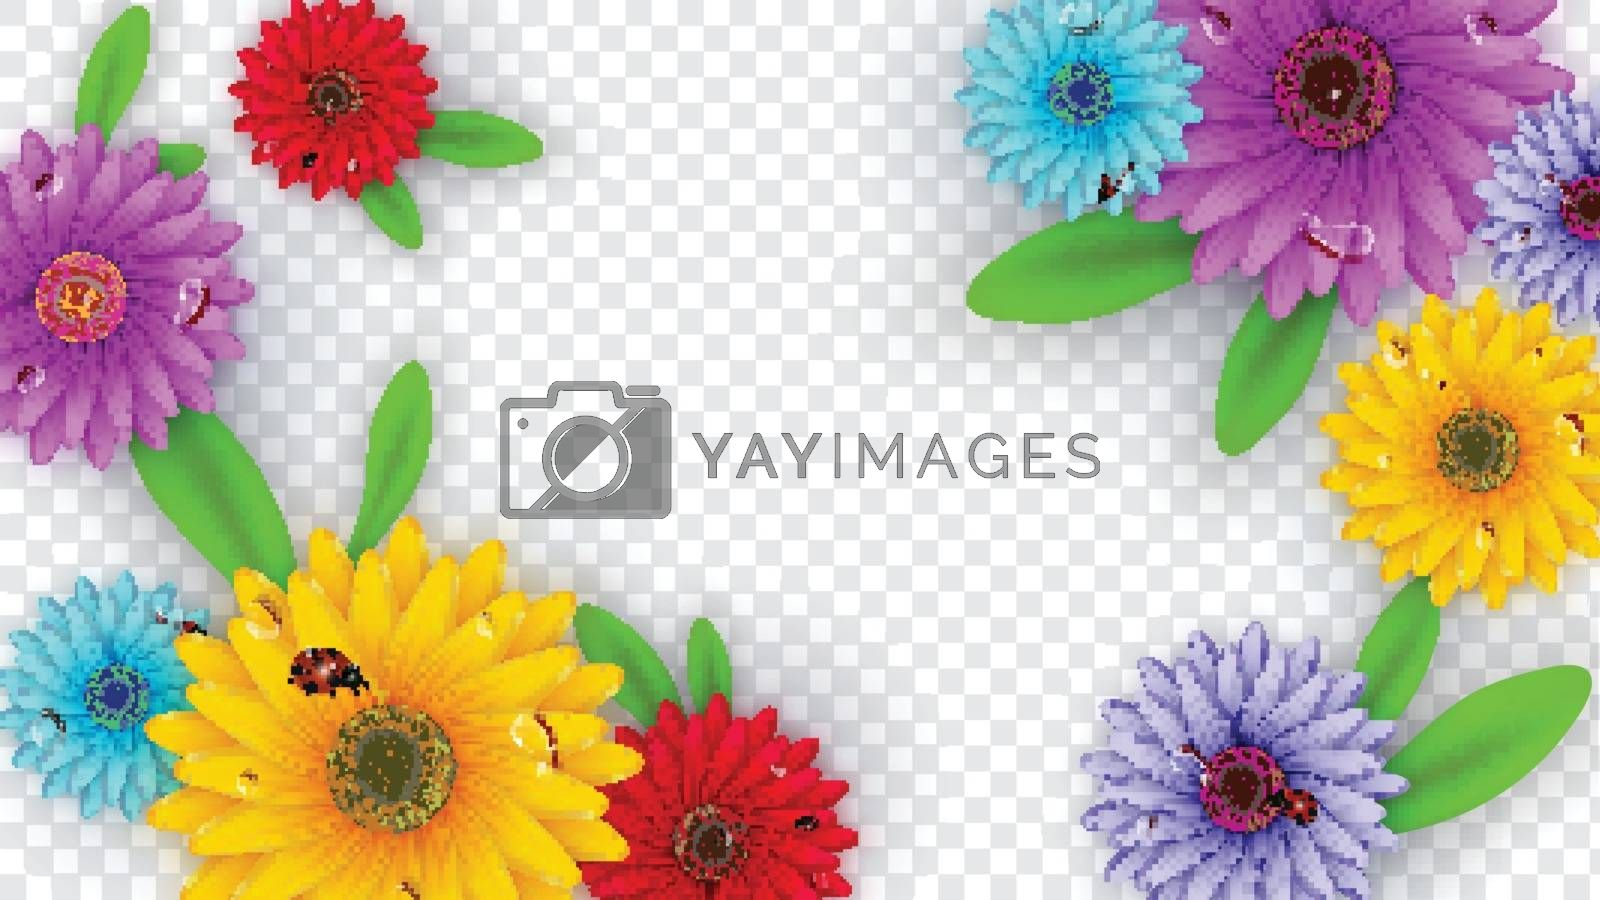 Royalty free image of Colorful gerbera flowers decorated on transparent background for by aispl